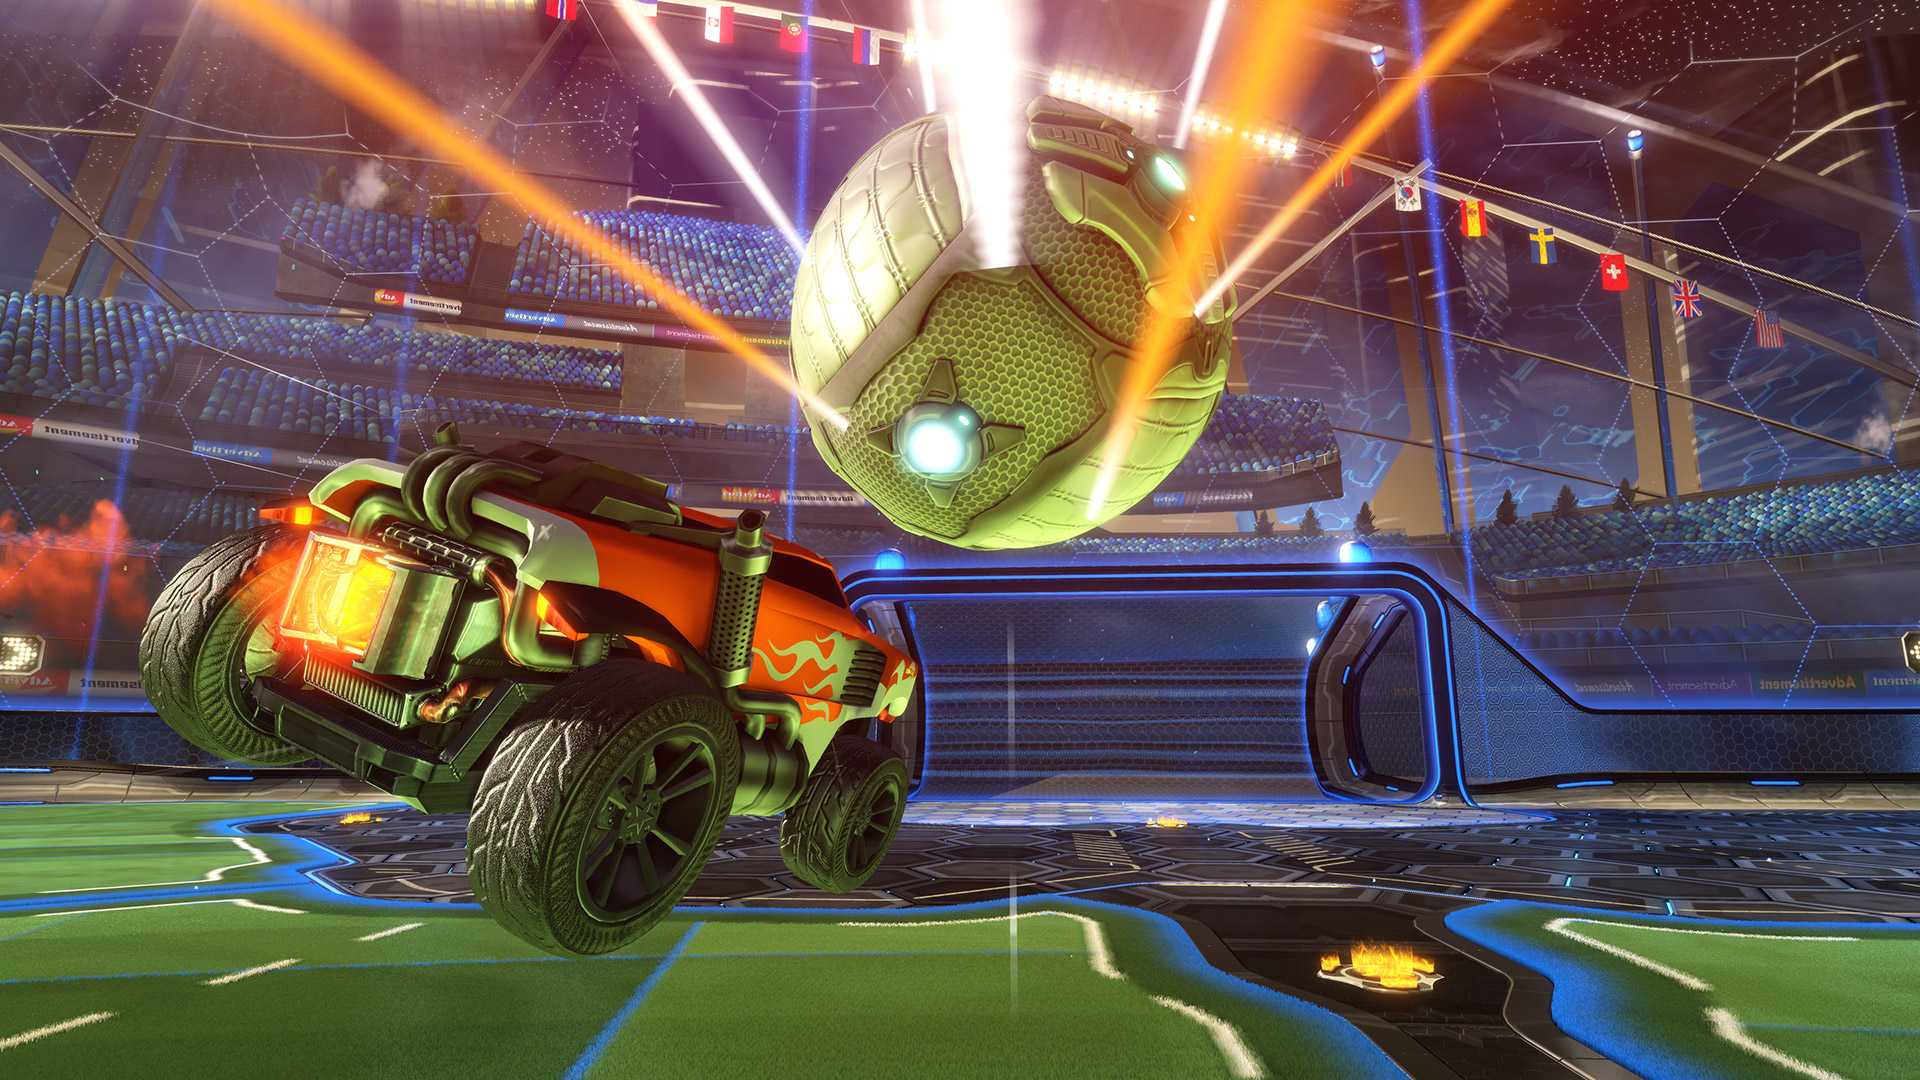 Rocket League Collector's Edition Available on July 5, Includes 4 New Cars